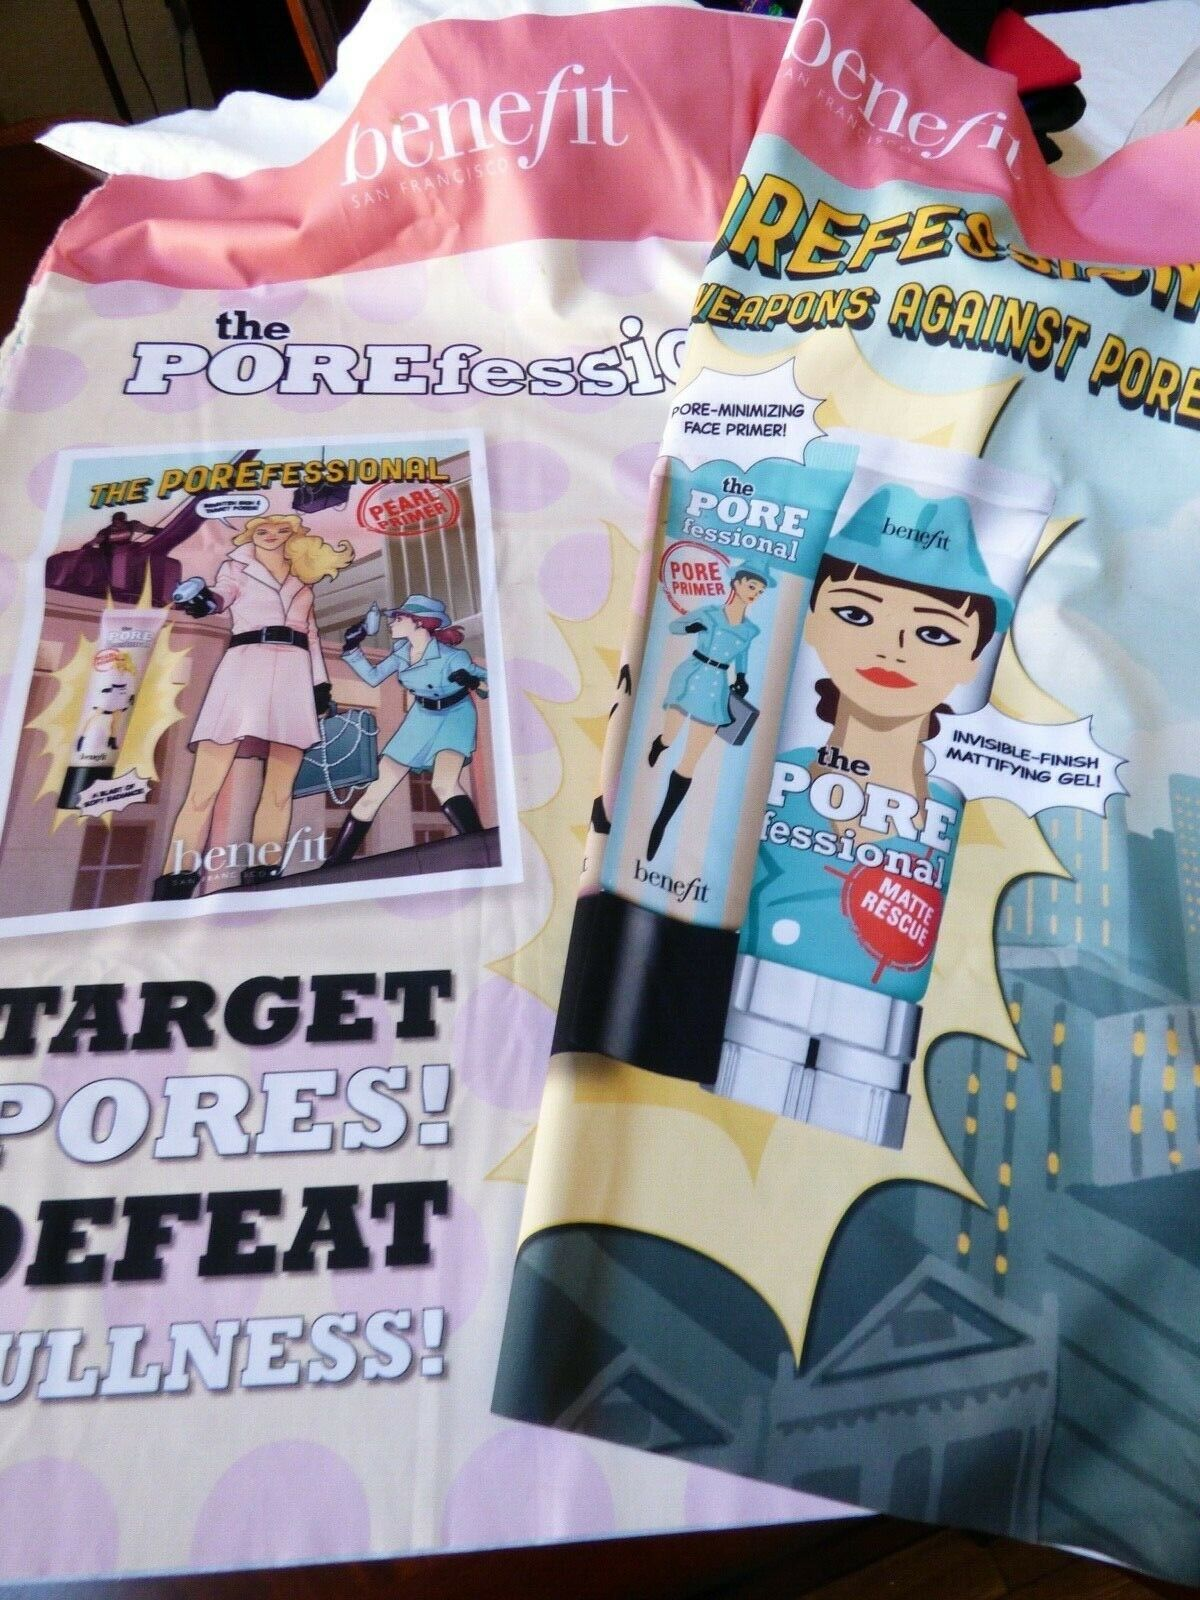 Primary image for Benefit Porefessional Cosmetics Fabric Banner 4 panel poster Display 108x35